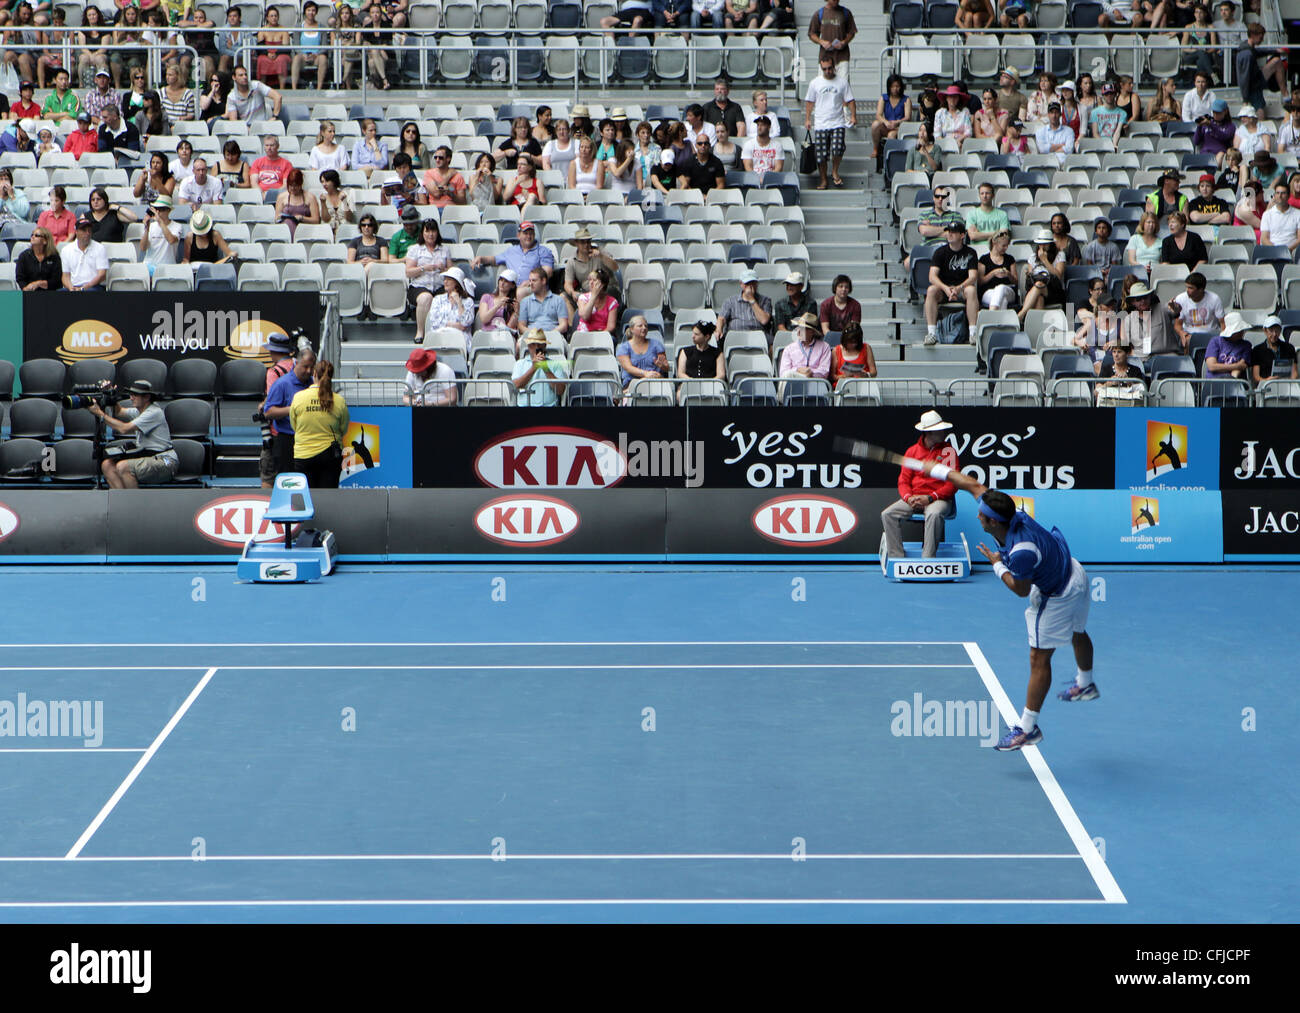 MELBOURNE, AUSTRALIA - JANUARY 20, 2012: ATP tennis player Frederico Gil serves against world number 5 player Jo - Stock Image